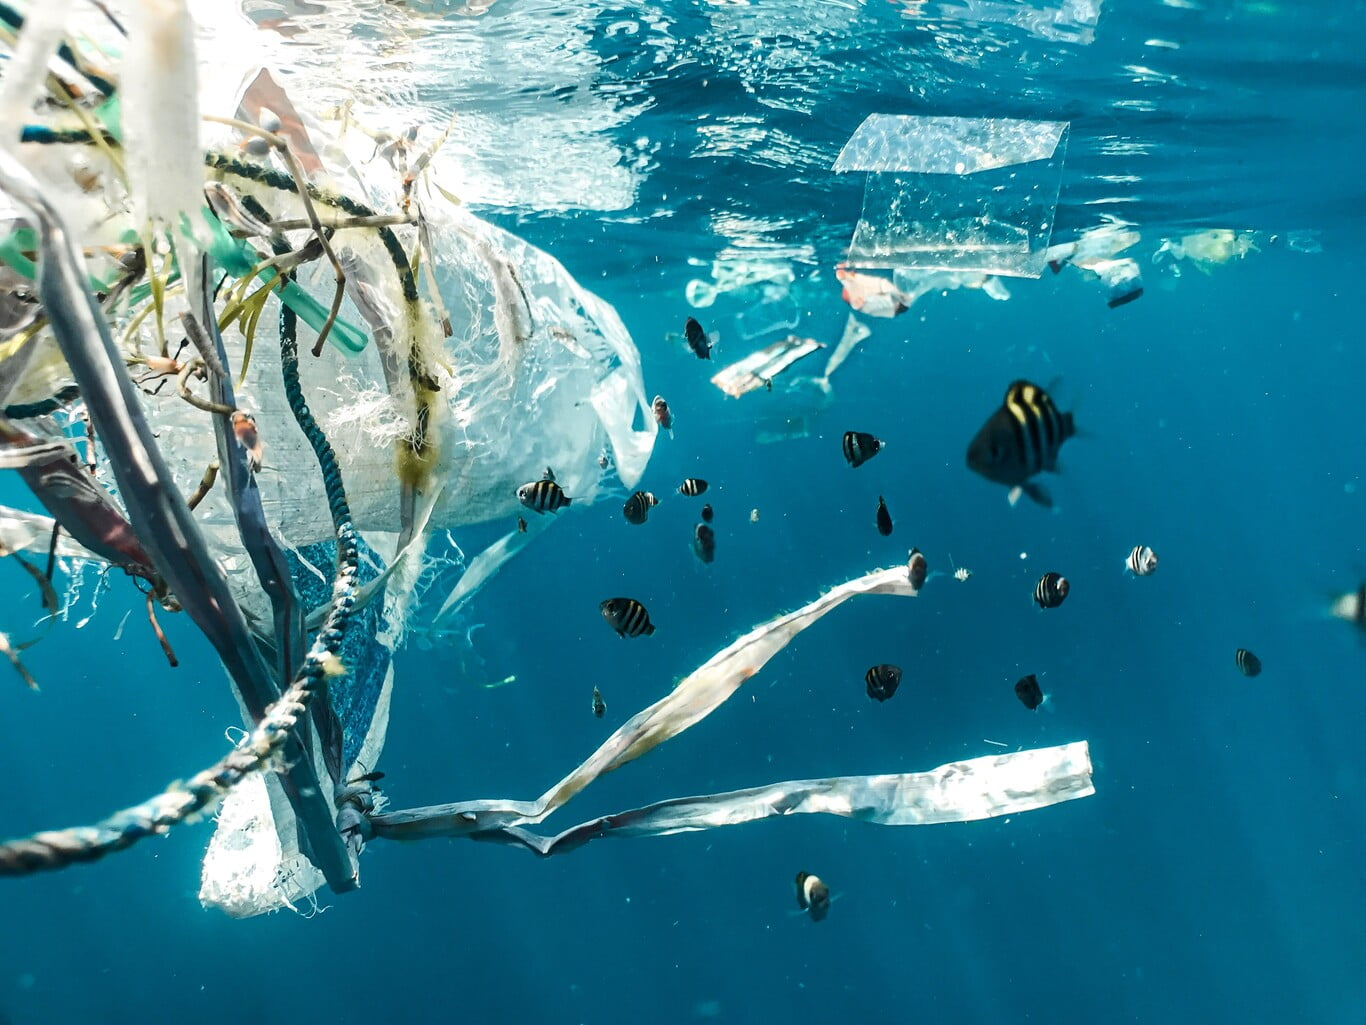 Eliminating plastic from our lives today is impossible: Scientists are looking for a way to make it less bad for the environment